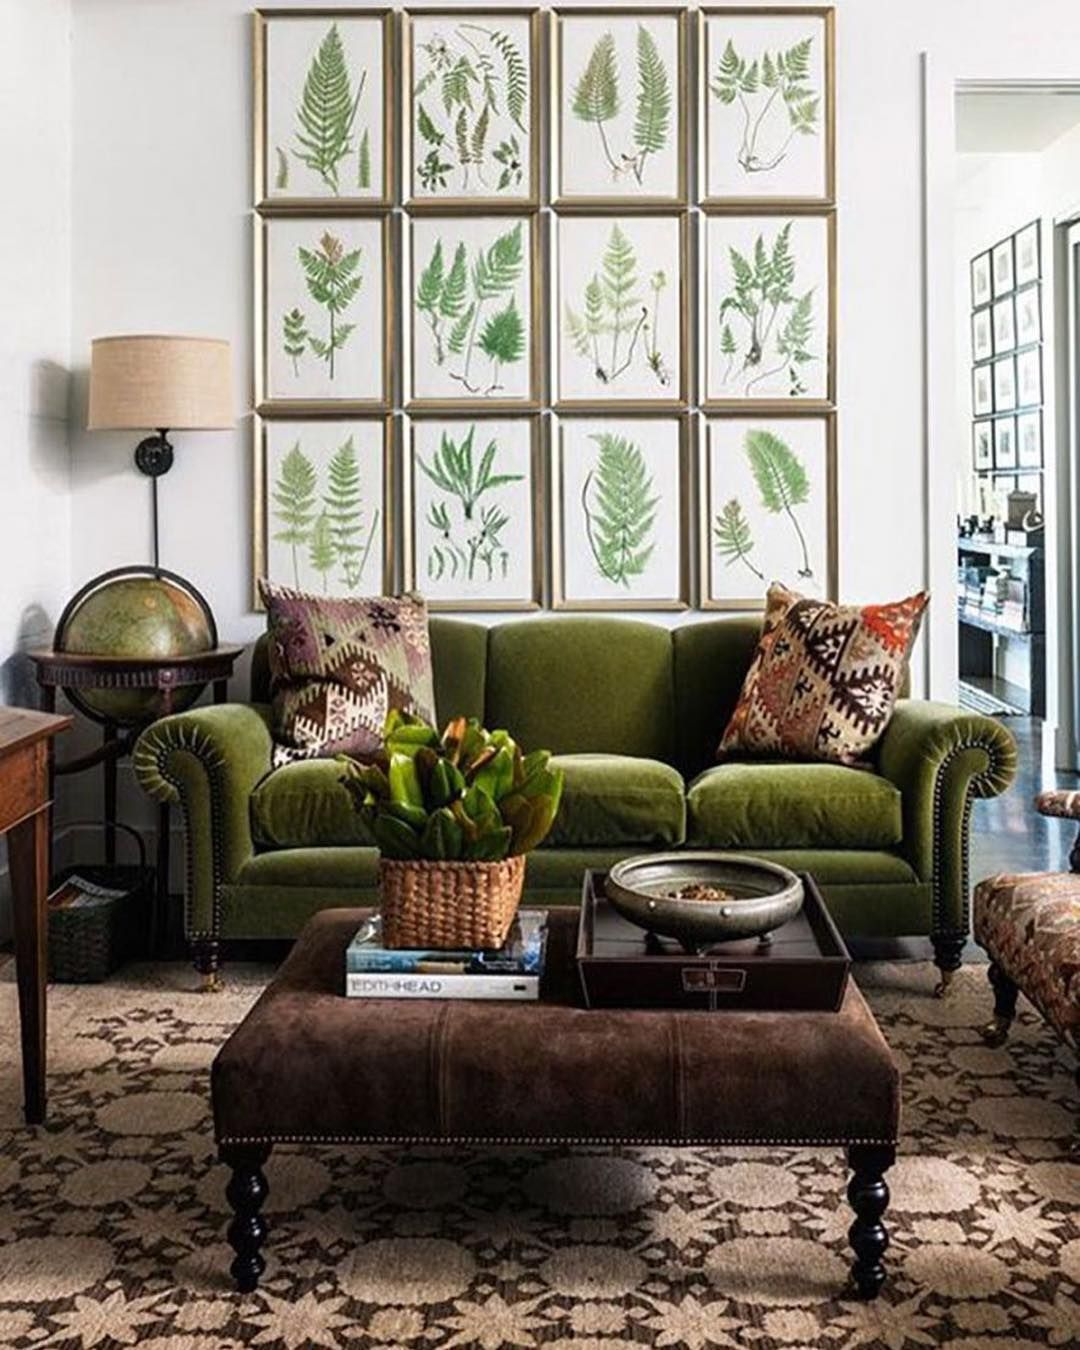 darla powell interiors bringing the outside in decorating with nature 2017 apartment